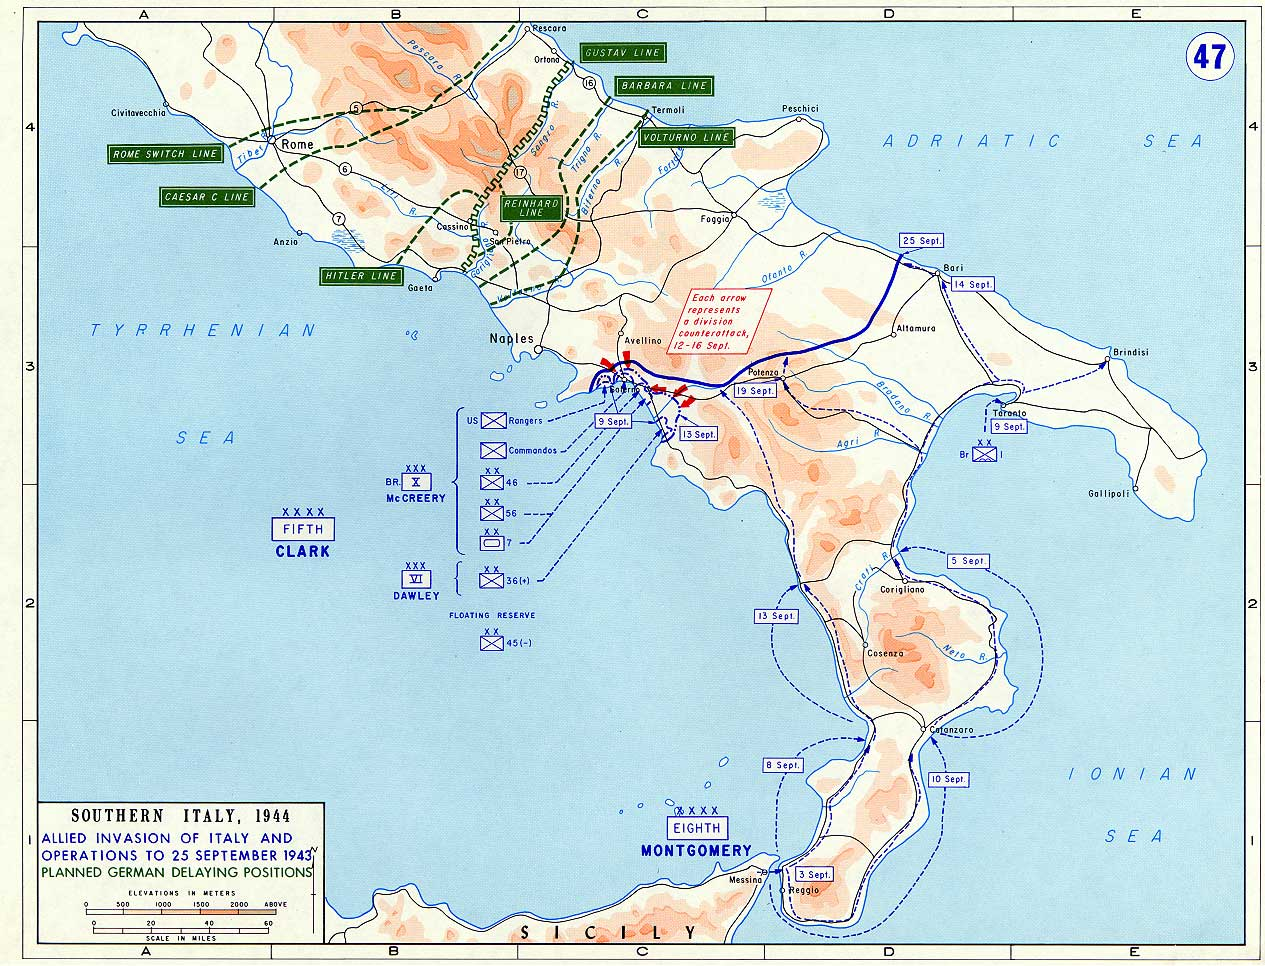 <p>Le varie linee di difesa tedesche tra il gennaio e il giugno 1944.</p><p class='eng'>Southern Italy, 1944. Allied invasion of Italy and operations to 25 semptember 1943. Planned german delaying positions.</p>